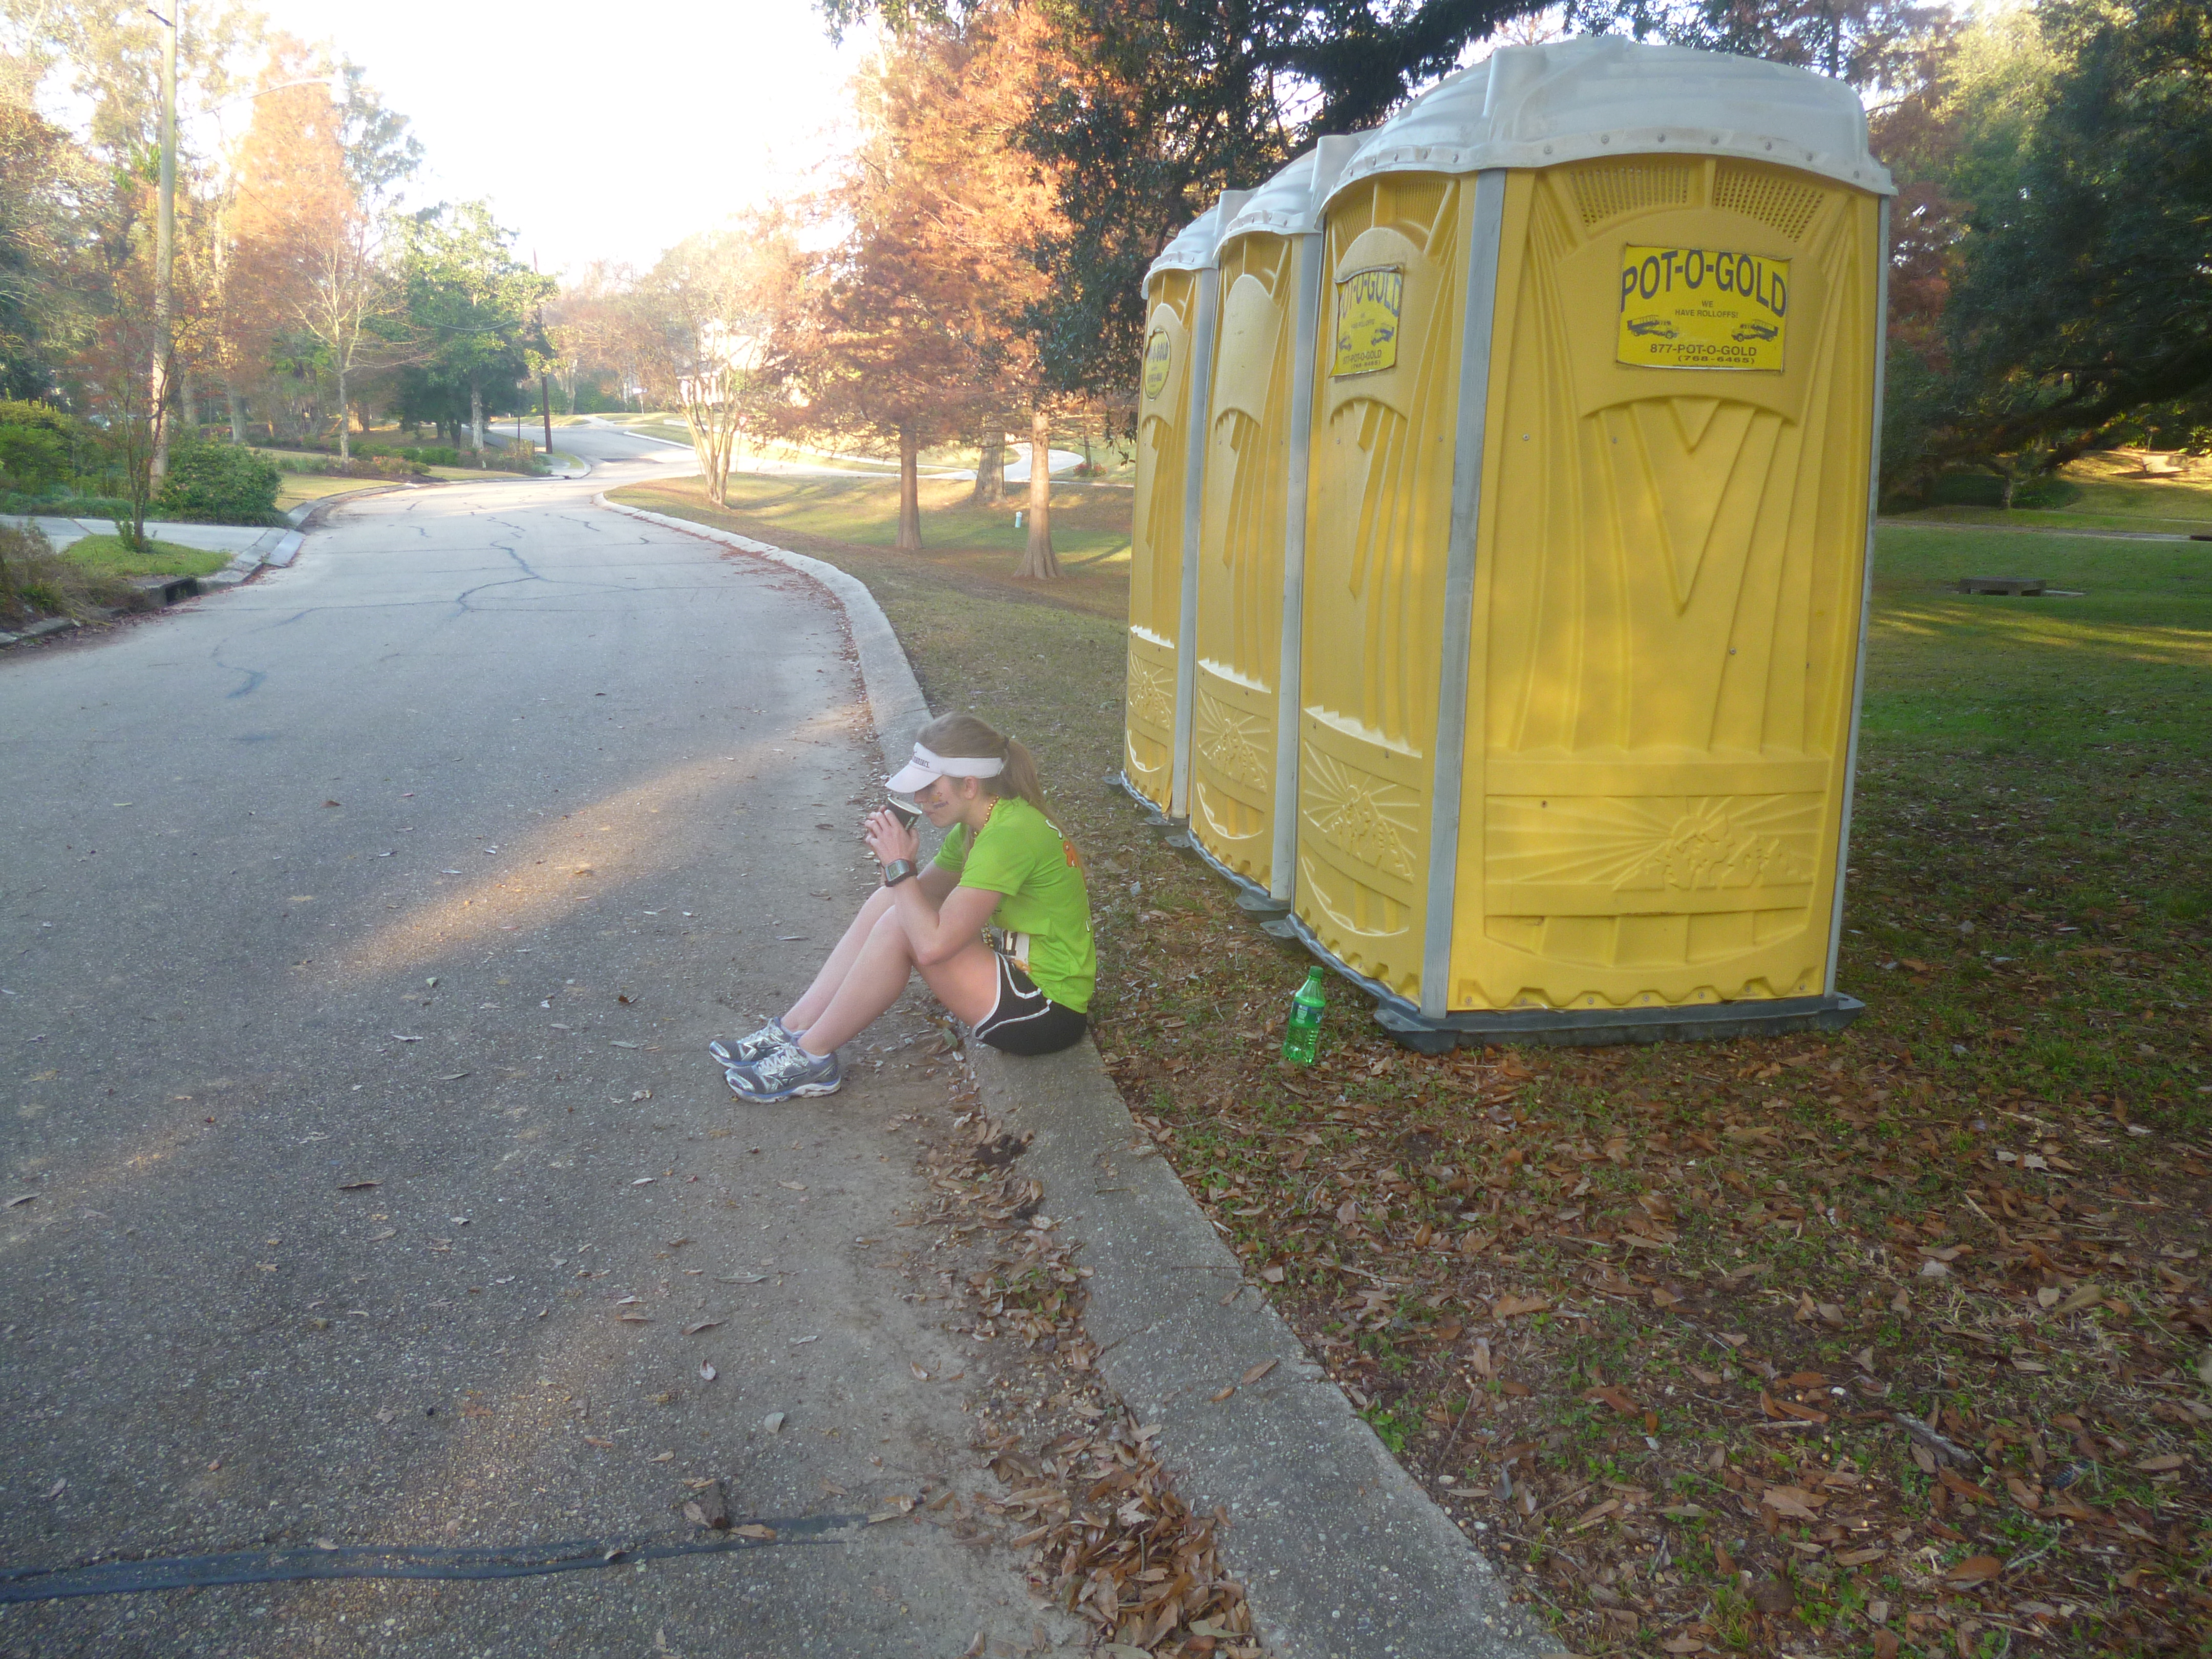 On the plus side, the porta potties were still clean.